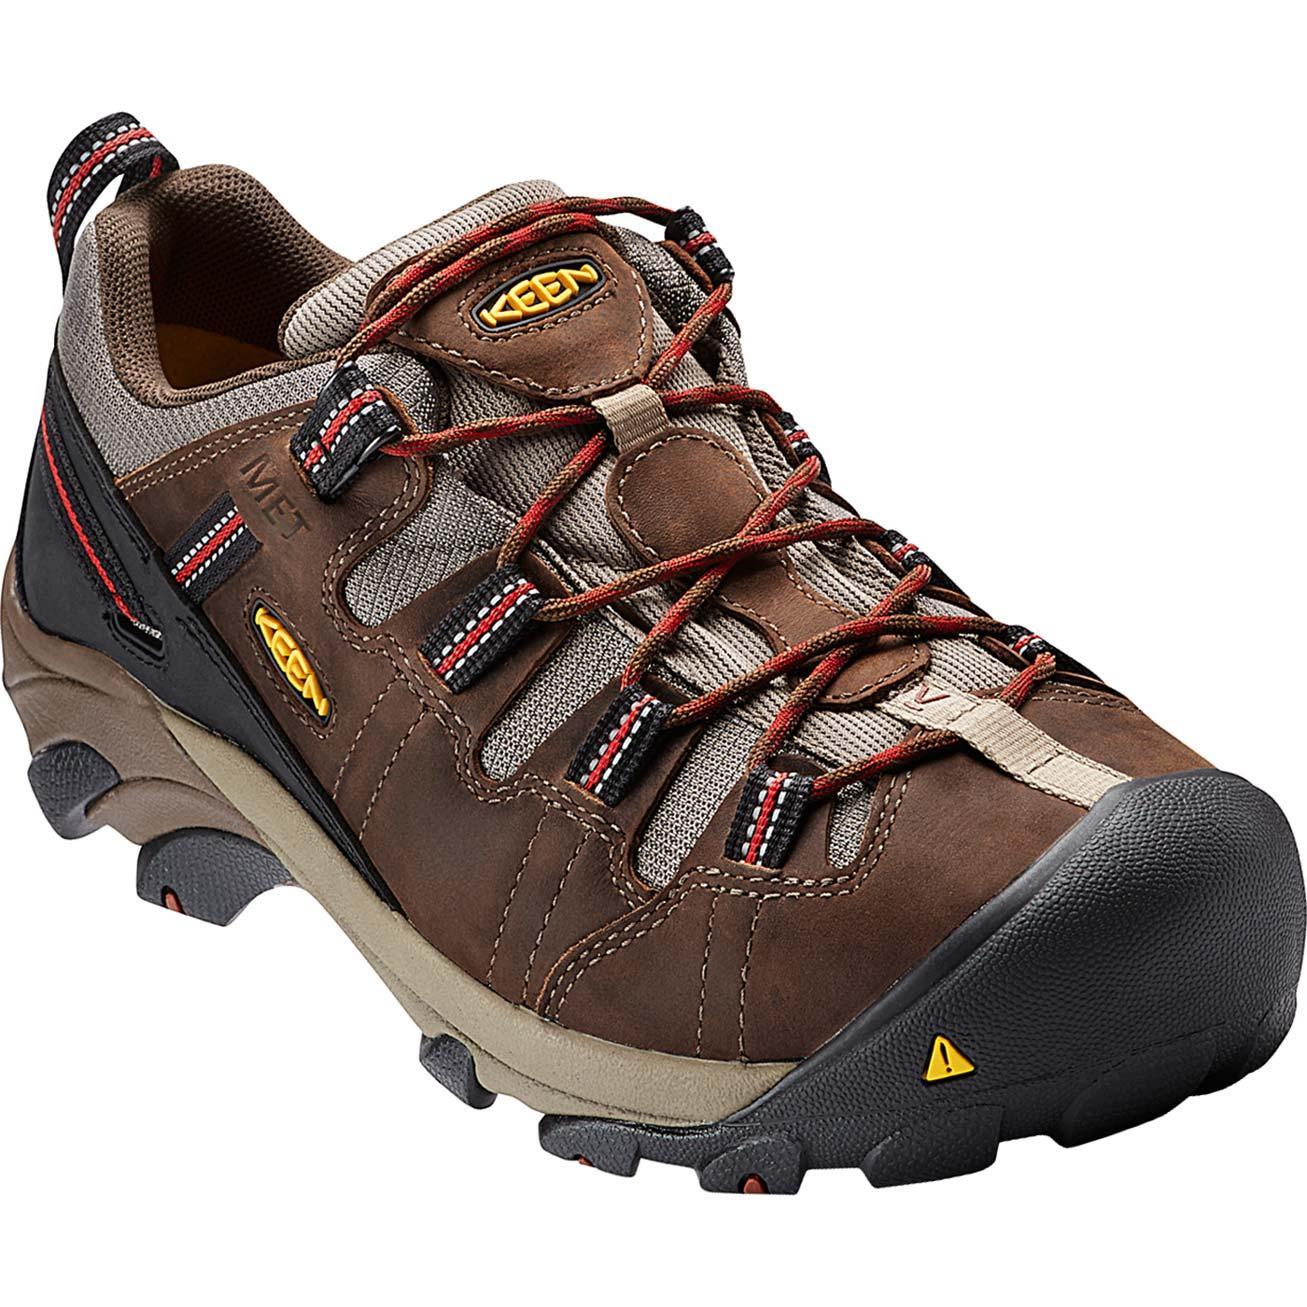 80267fa3e1 KEEN Utility® Detroit Steel Toe Internal Met Guard Work Athletic ShoeKEEN  Utility® Detroit Steel Toe Internal Met Guard Work Athletic Shoe,